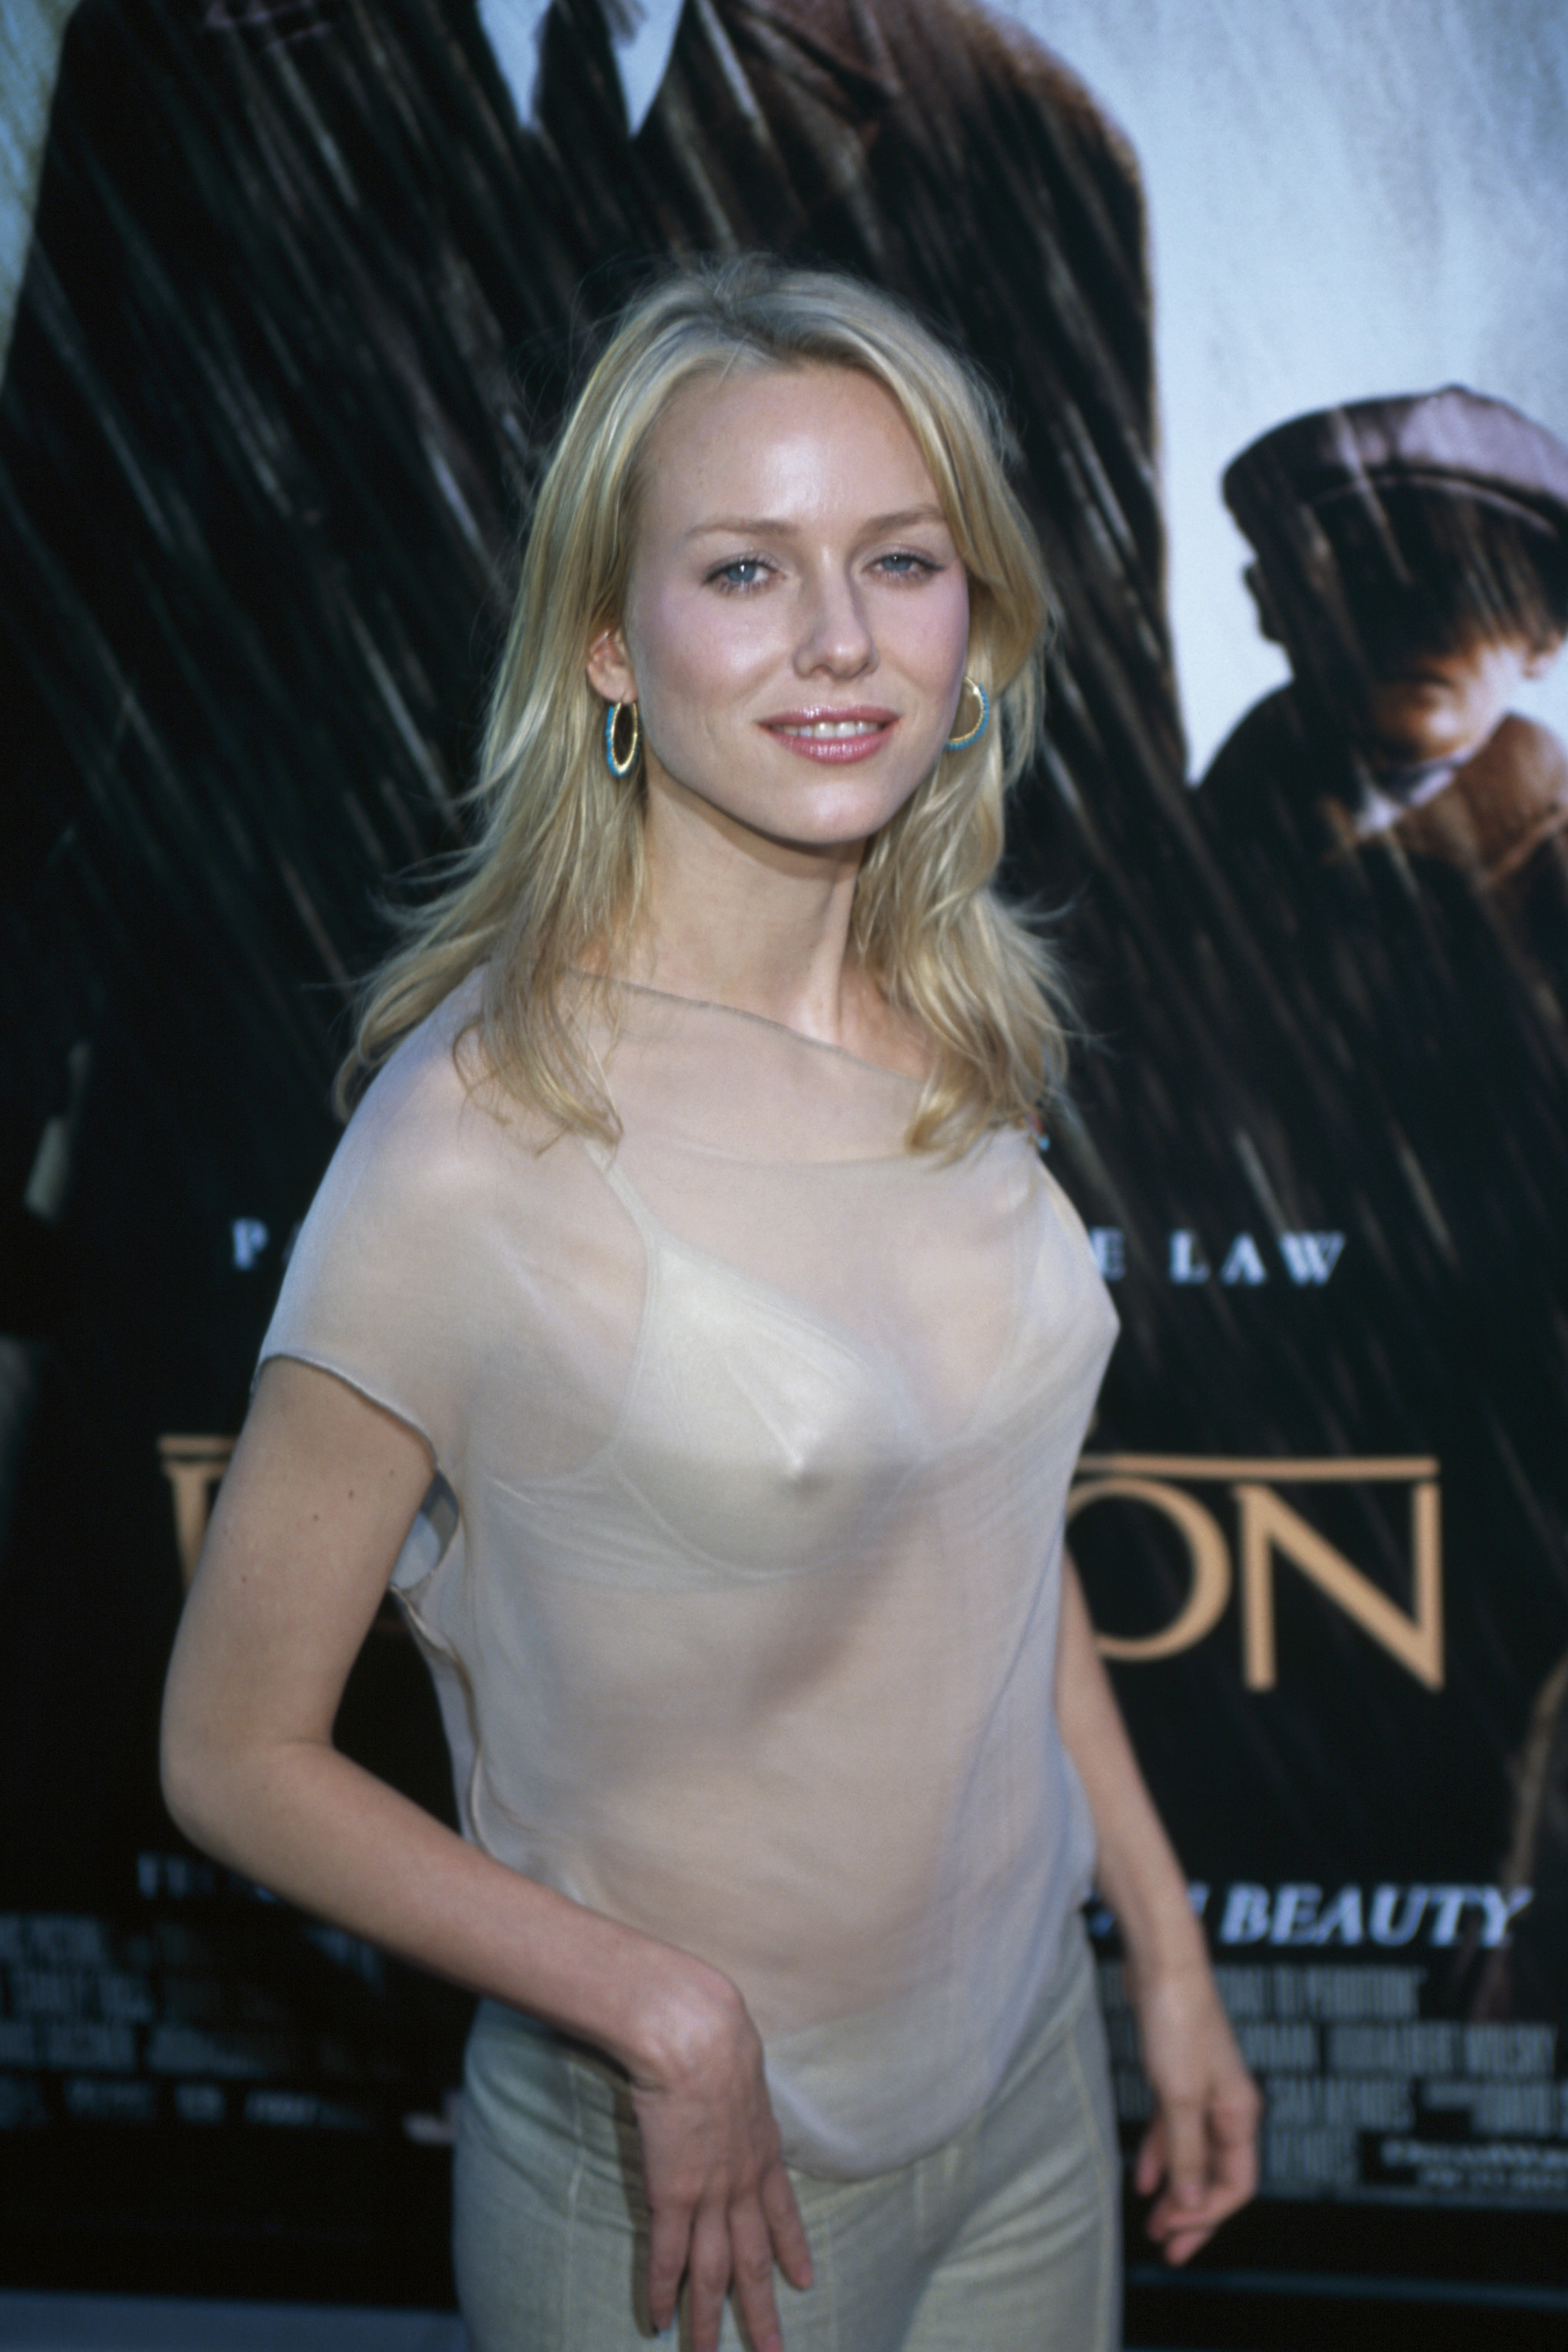 Naomi Watts photo 25 of 1618 pics, wallpaper - photo ...